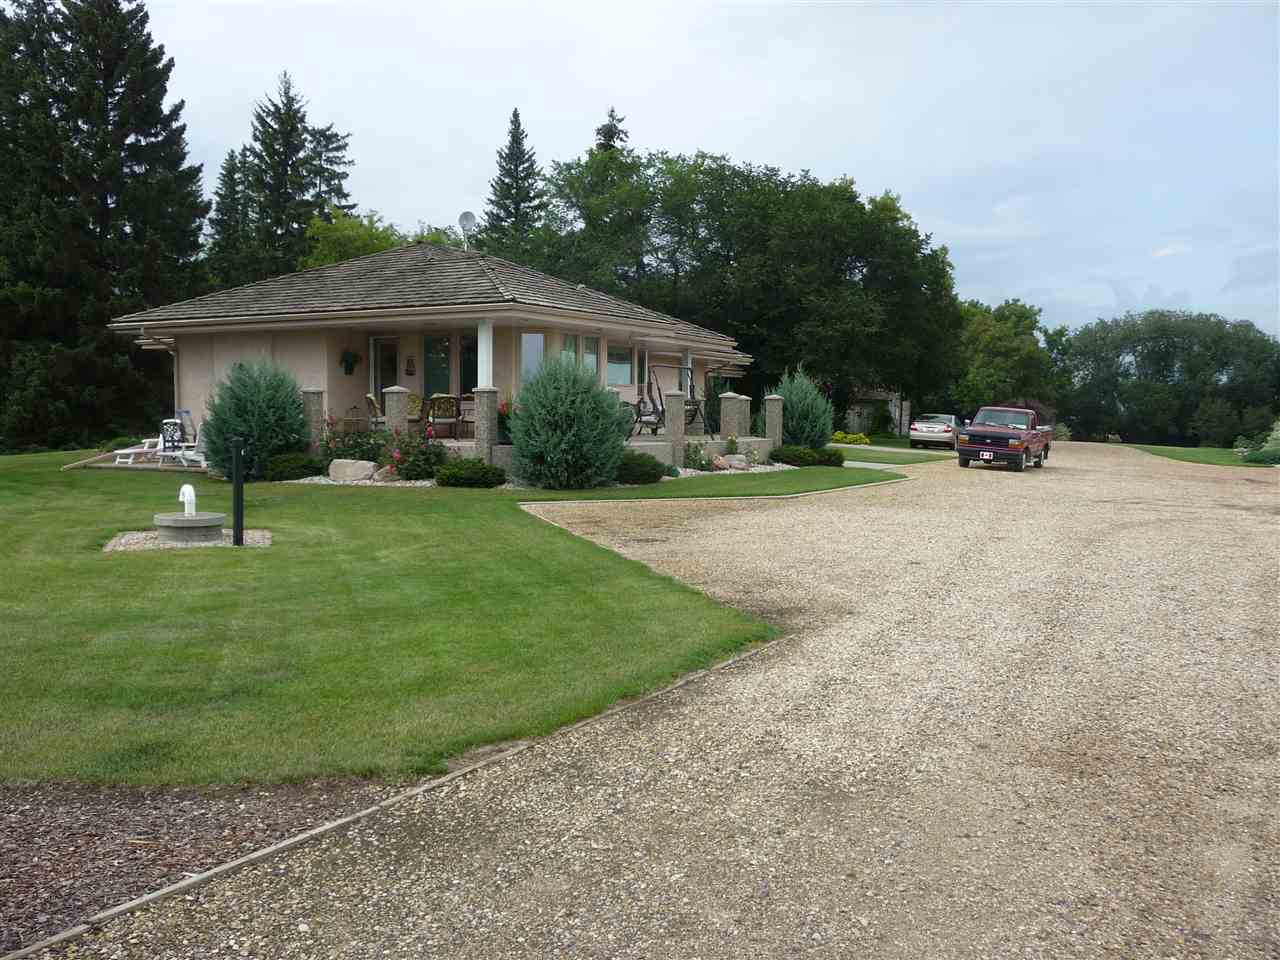 Photo 23: 54527 RGE RD 243: Rural Sturgeon County House for sale : MLS(r) # E4033494